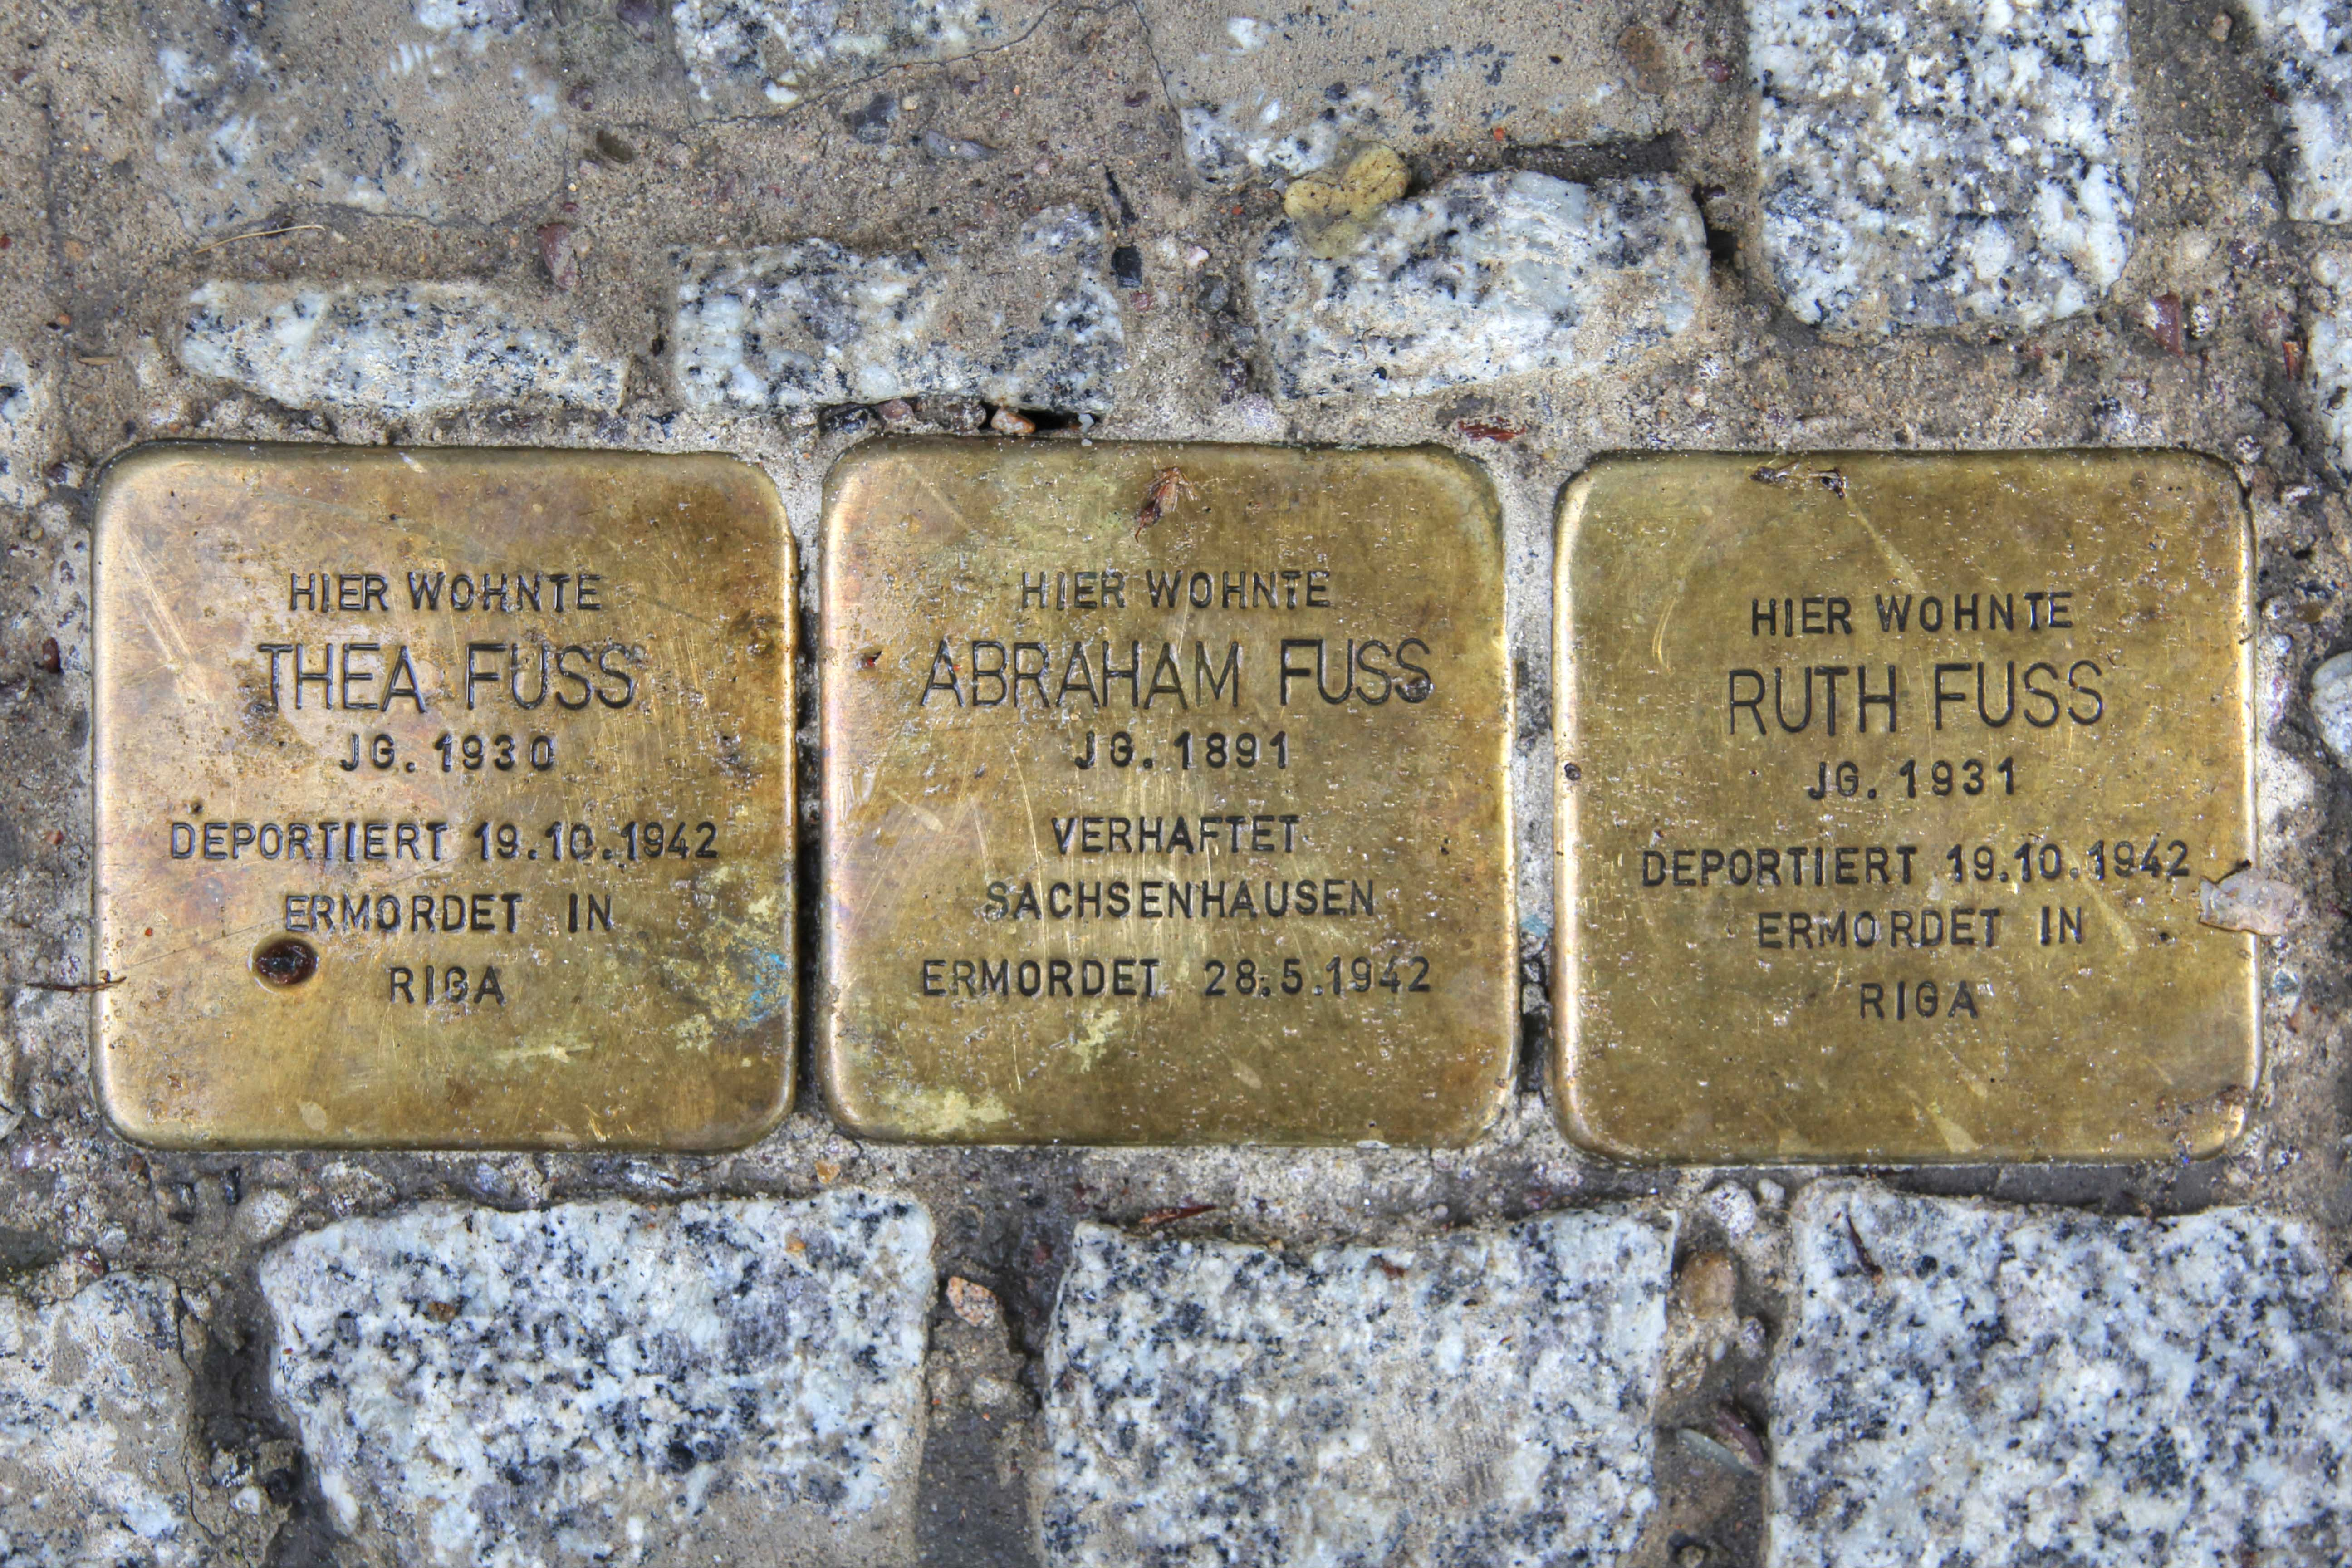 Stolpersteine 113: In memory of Thea Fuss, Abraham Fuss and Ruth Fuss (Fehrbelliner Strasse 81) in Berlin